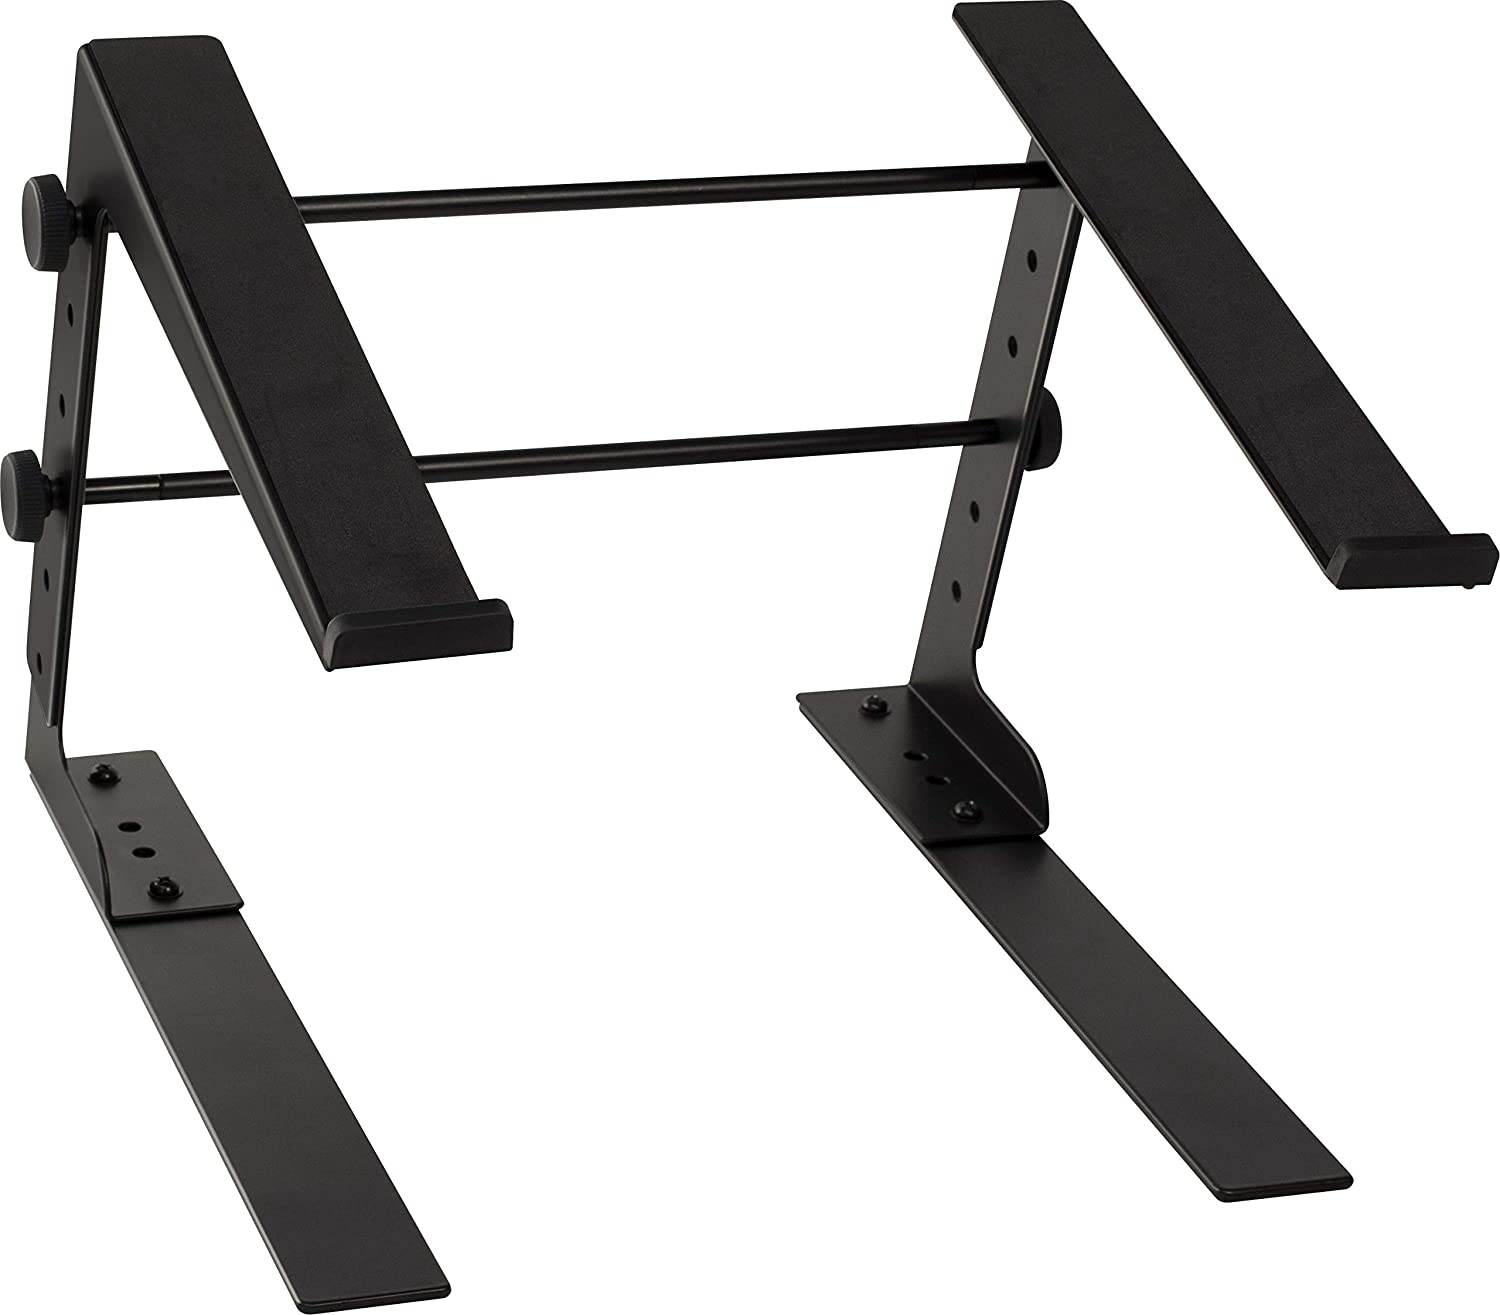 Ultimate Support JS-LPT100 JamStands Series Single-tier, Multi-purpose Laptop/DJ Stand with Stand Alone Base